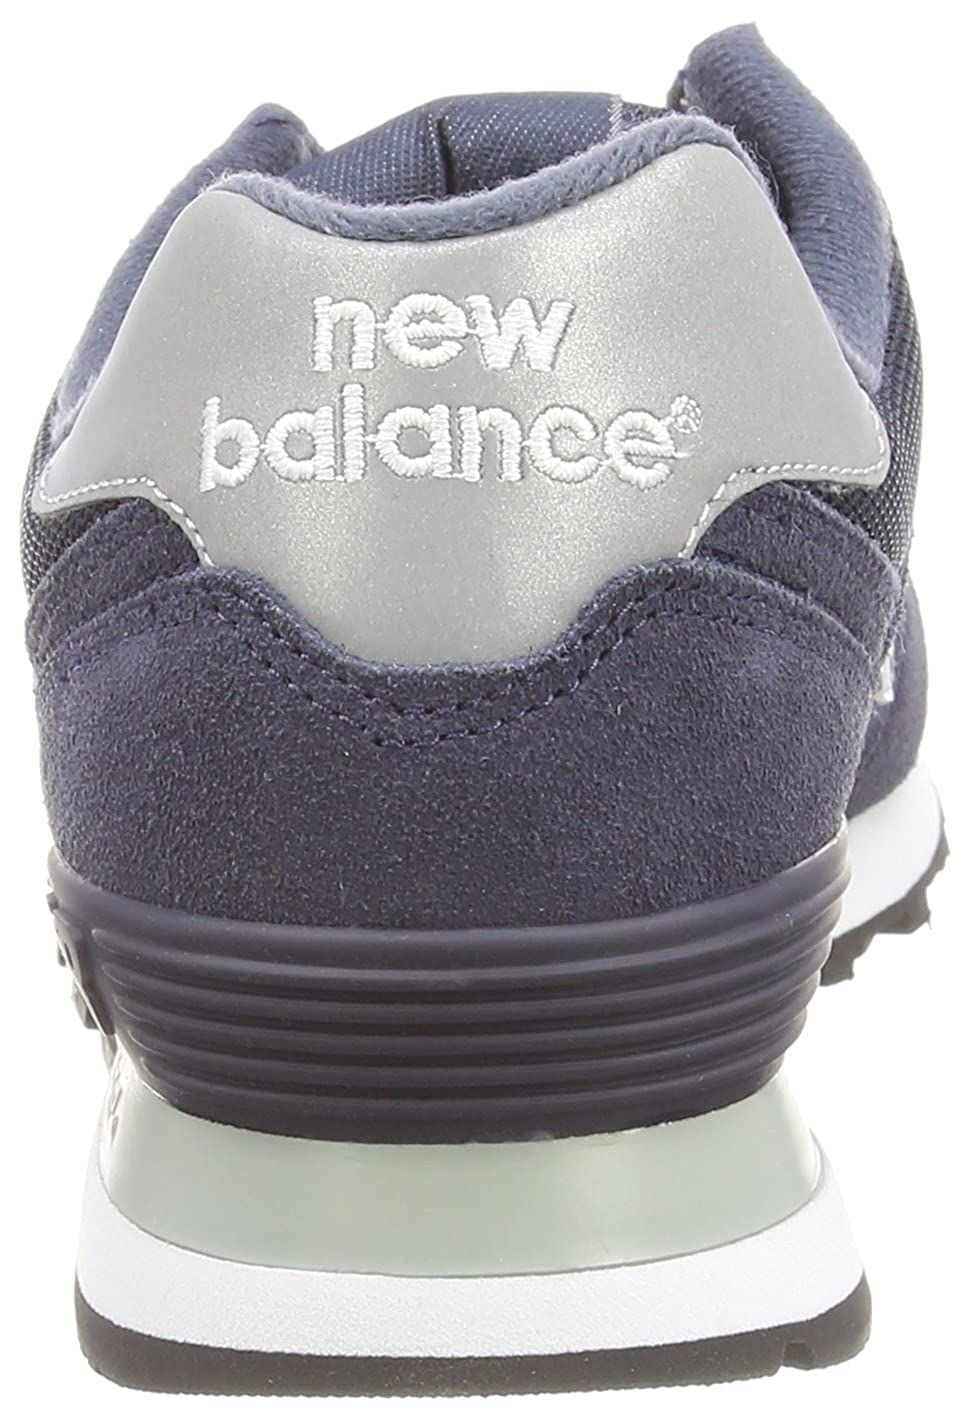 Amazon.com | Mens New Balance 574 Suede Lace up Retro Running Classic Sneakers | Fashion Sneakers